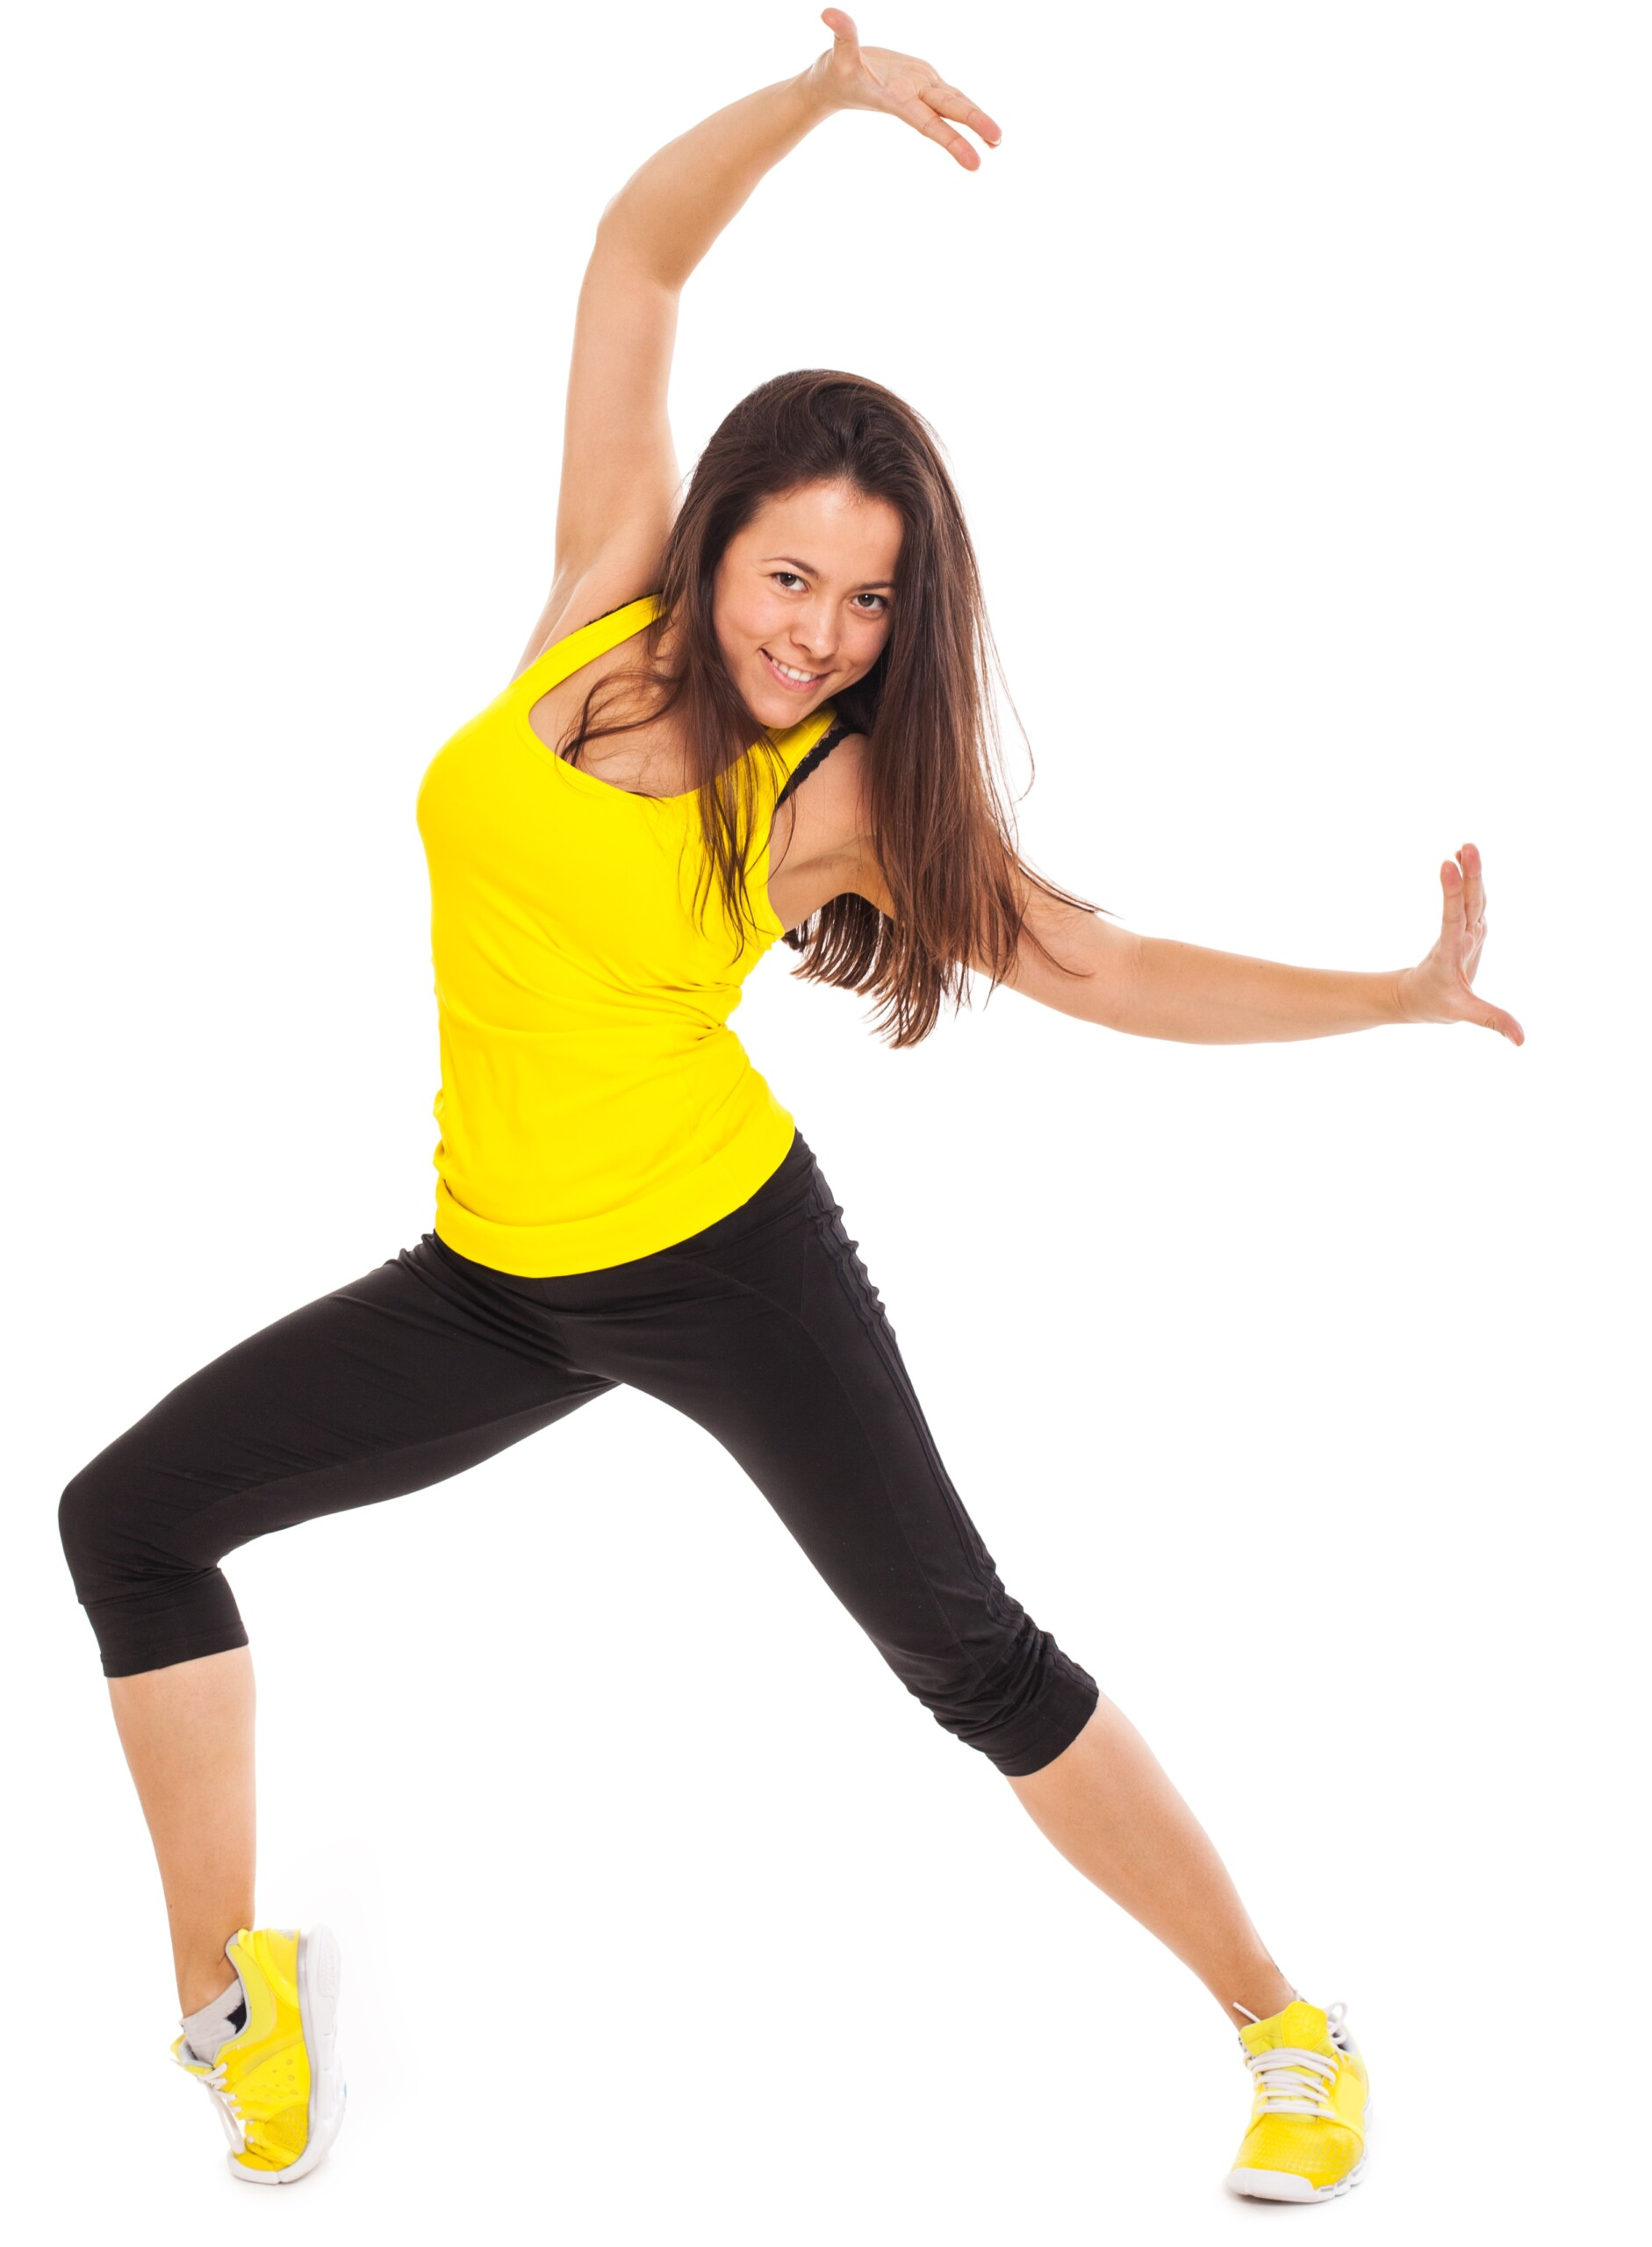 How Fit Can You Get from Living Room Dance Parties?